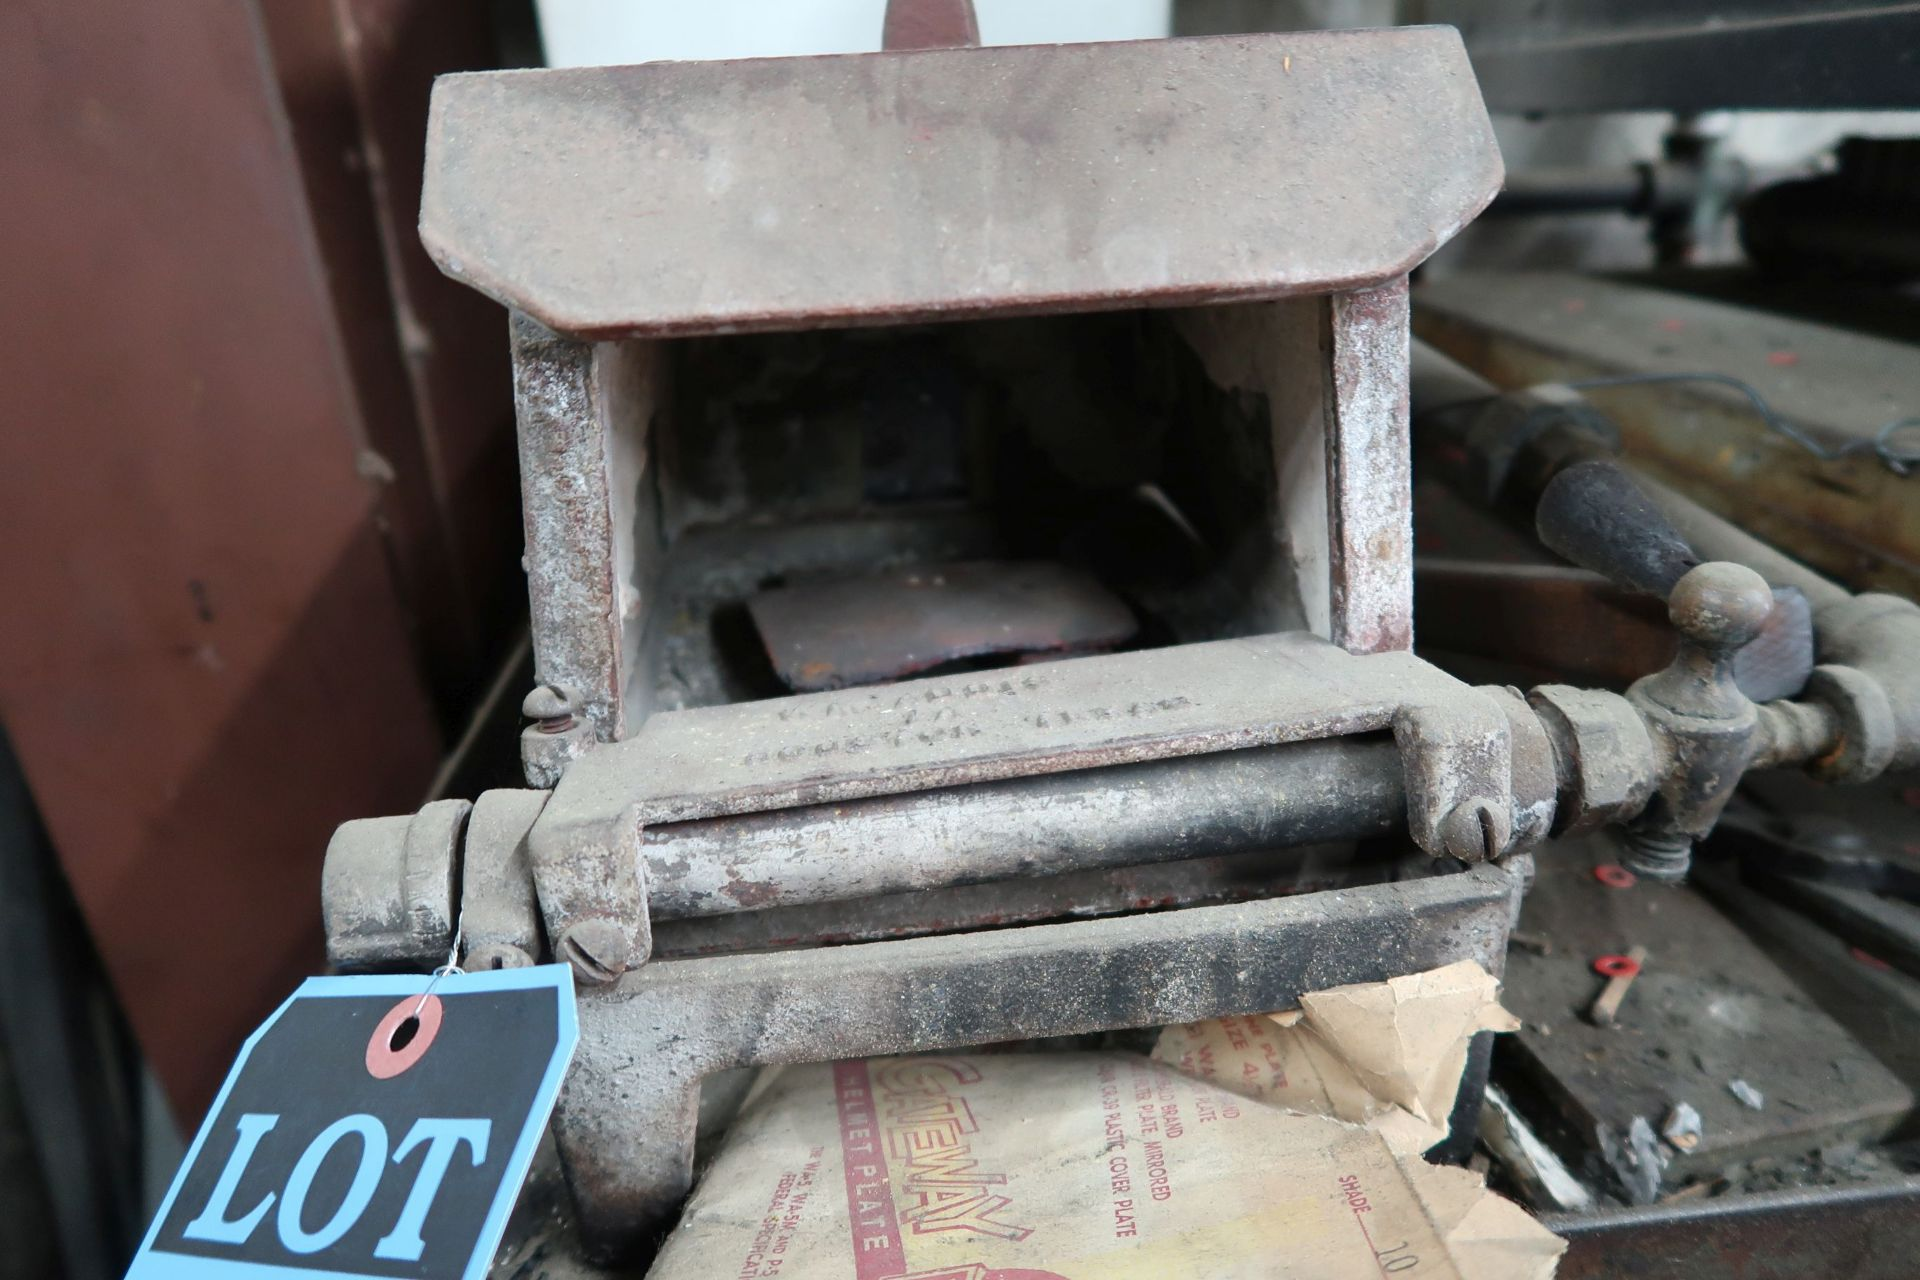 """ADDIS NATURAL GAS OVEN; 6""""W X 3""""H X 8"""" DEEP - Image 3 of 4"""